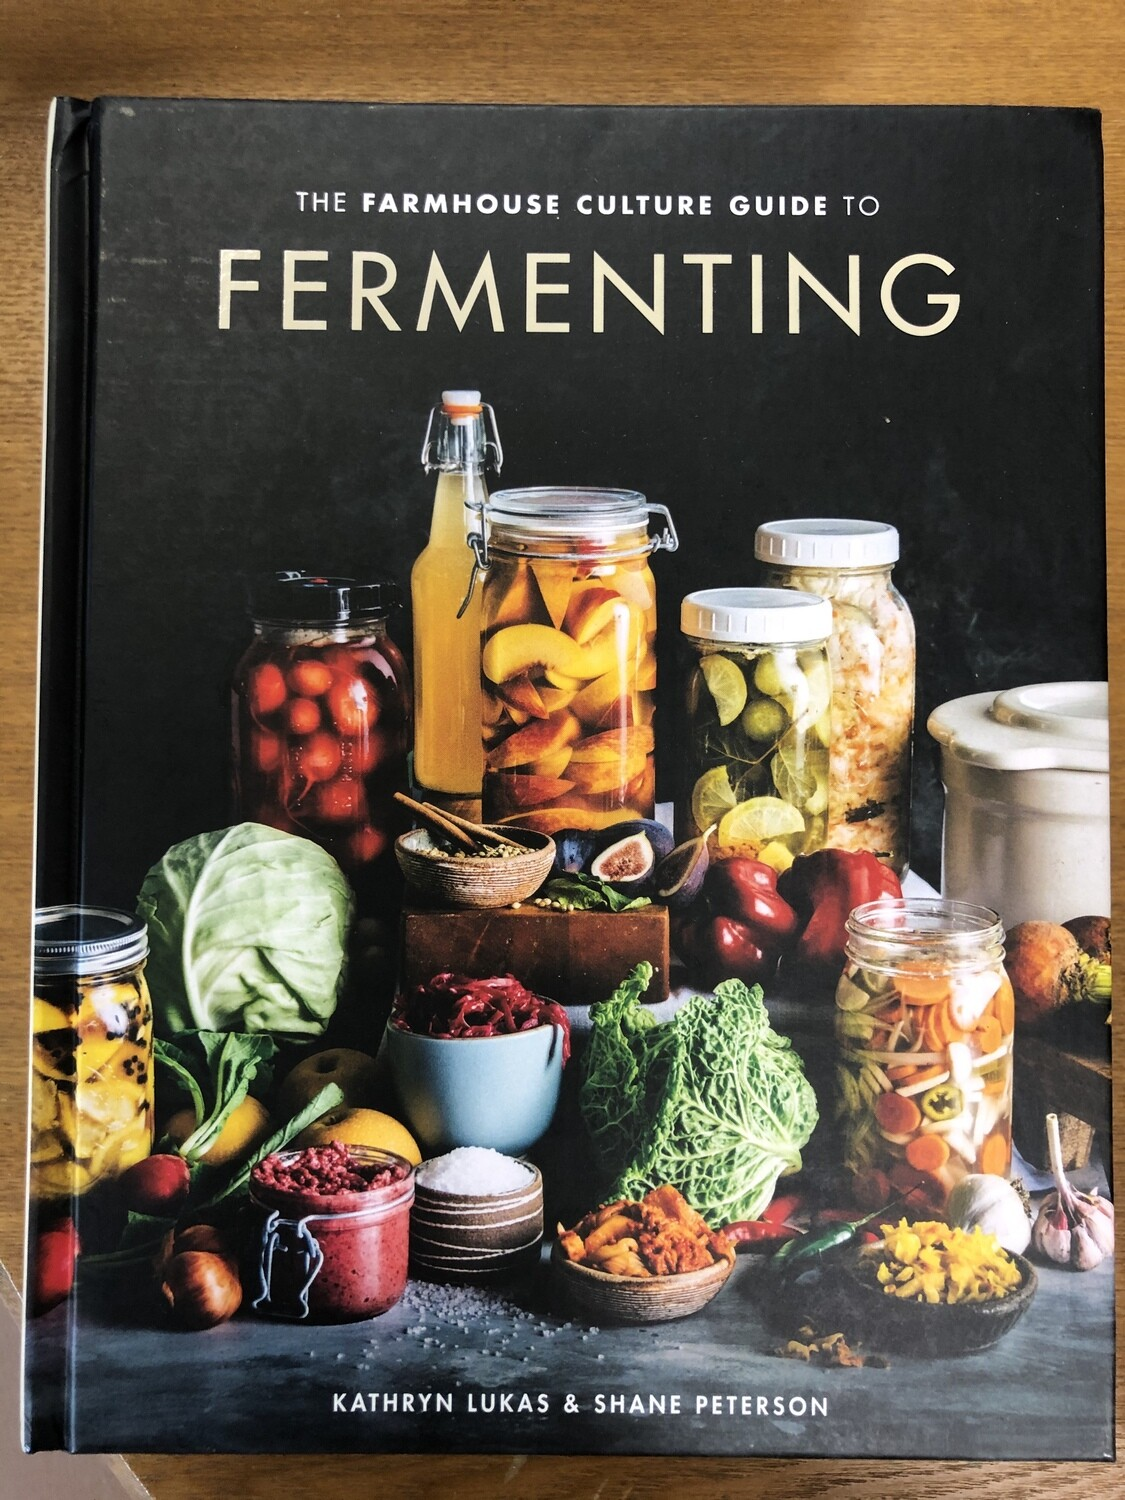 Farmhouse Guide to Fermenting